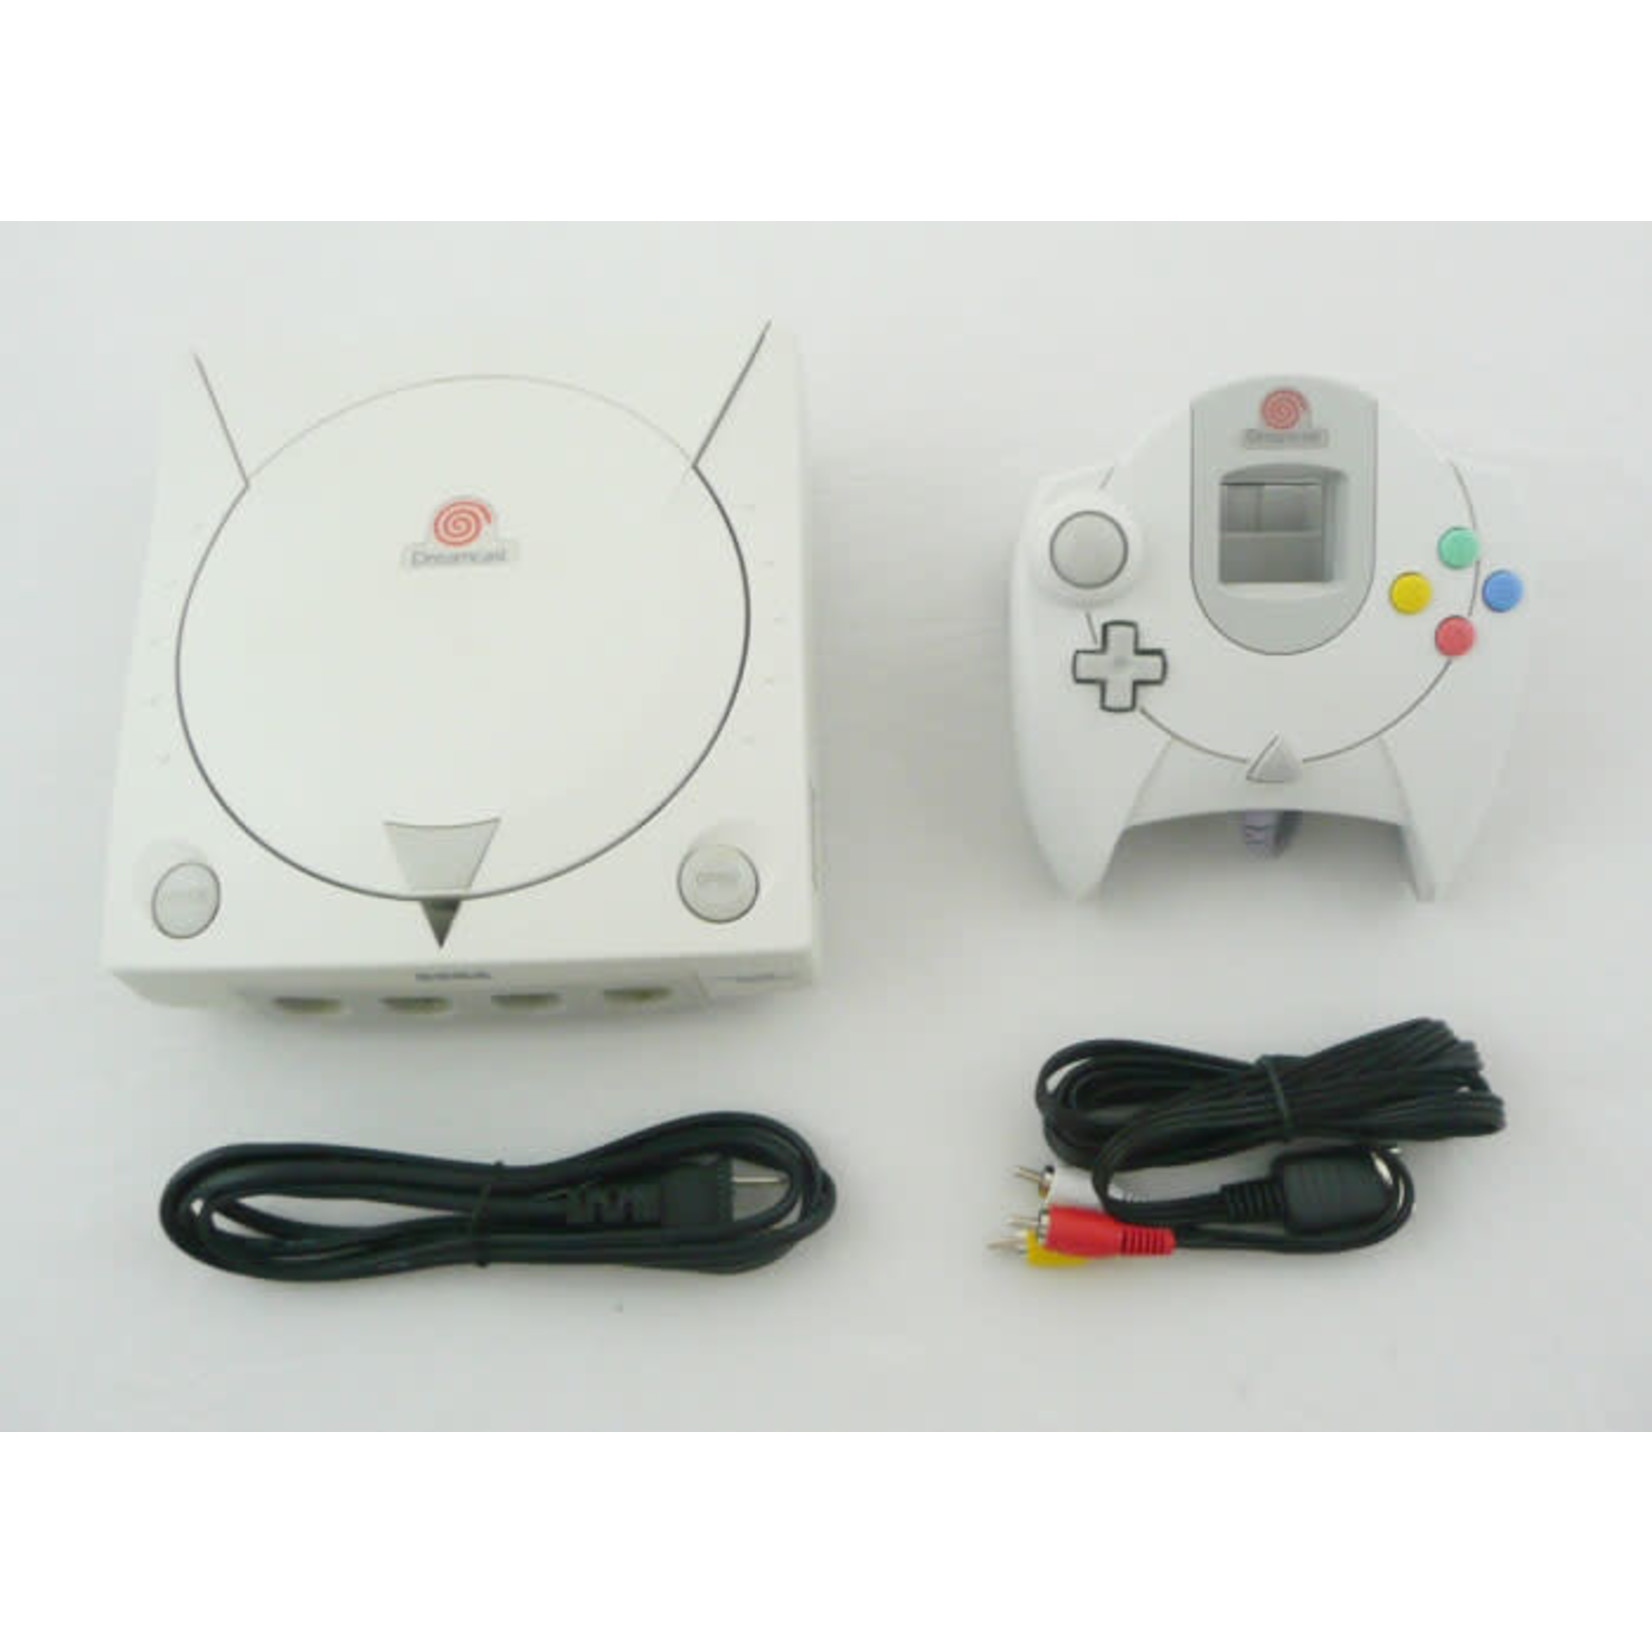 SYSTEM-USED DREAMCAST